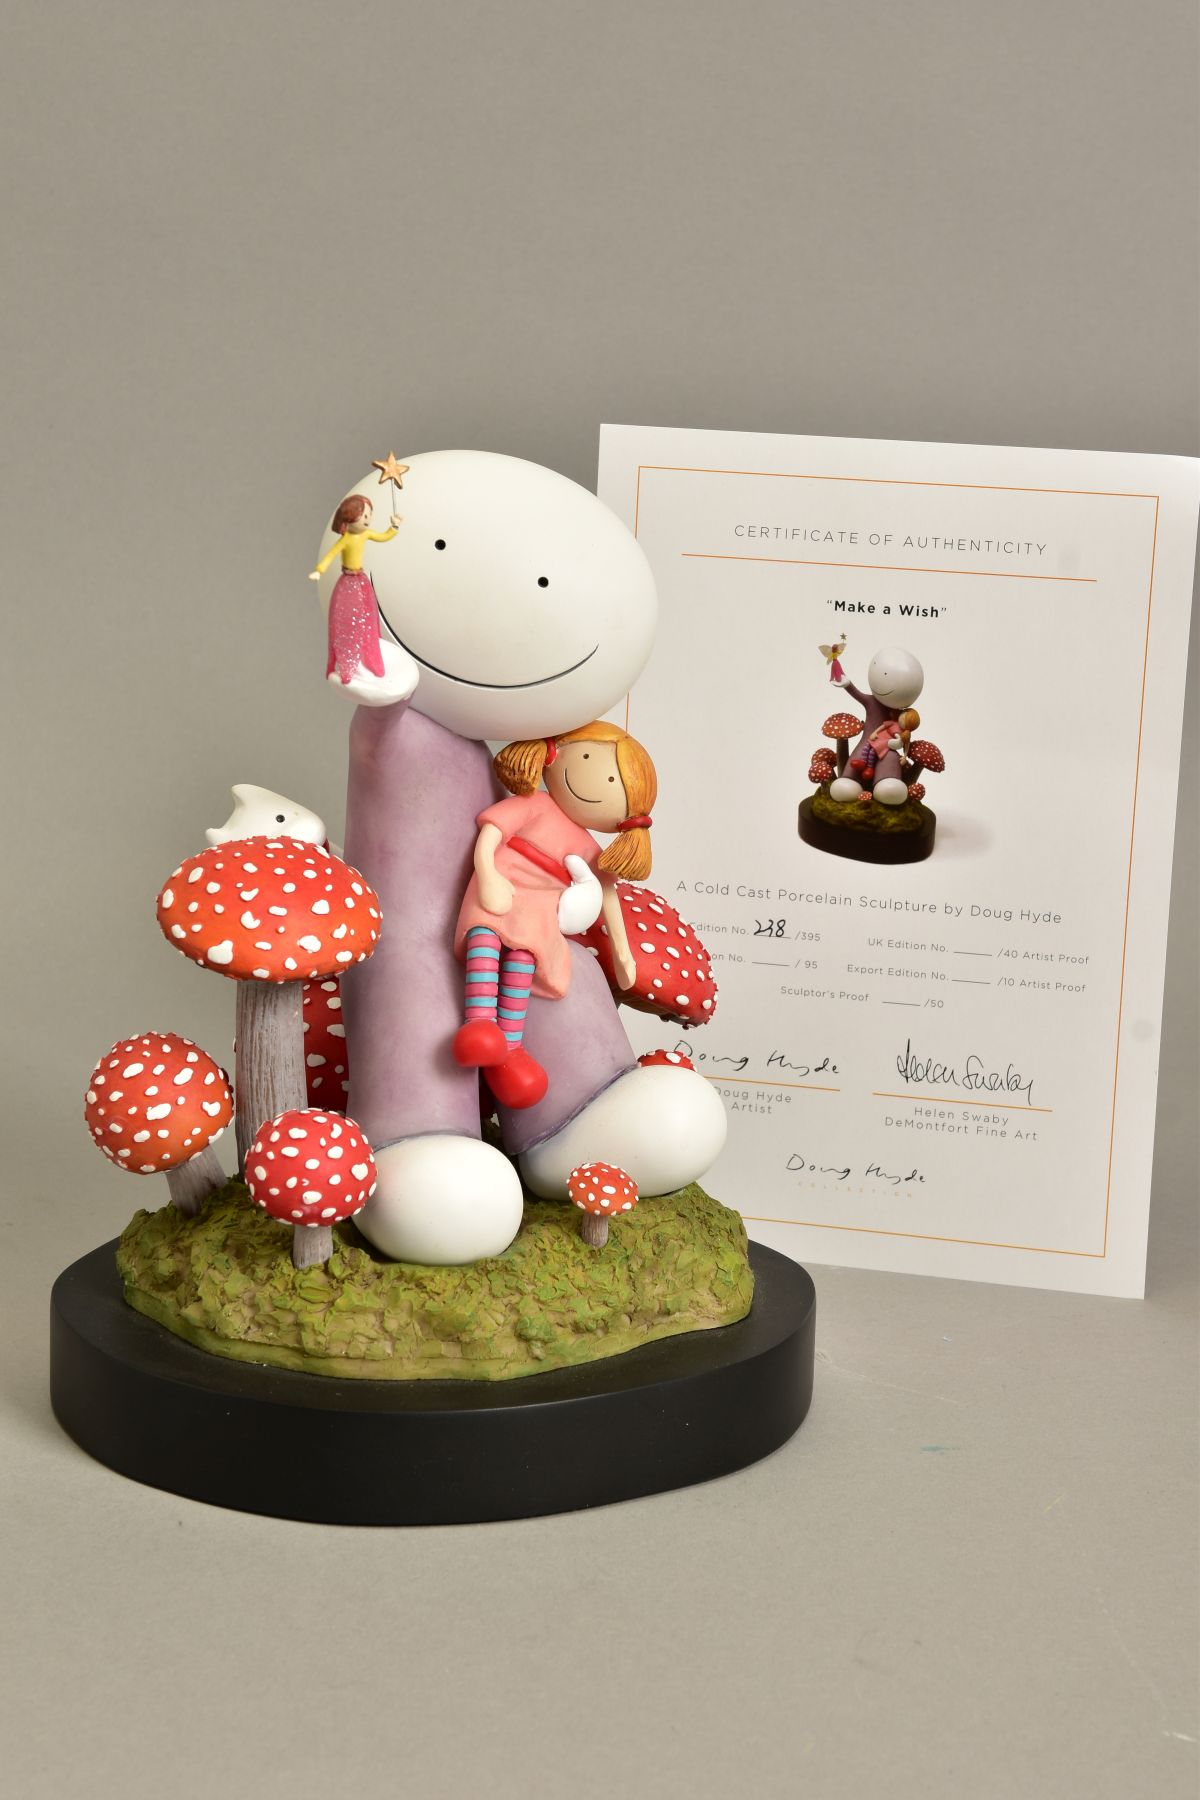 DOUG HYDE (BRITISH 1972) 'MAKE A WISH', limited edition sculpture of a girl and her doll,